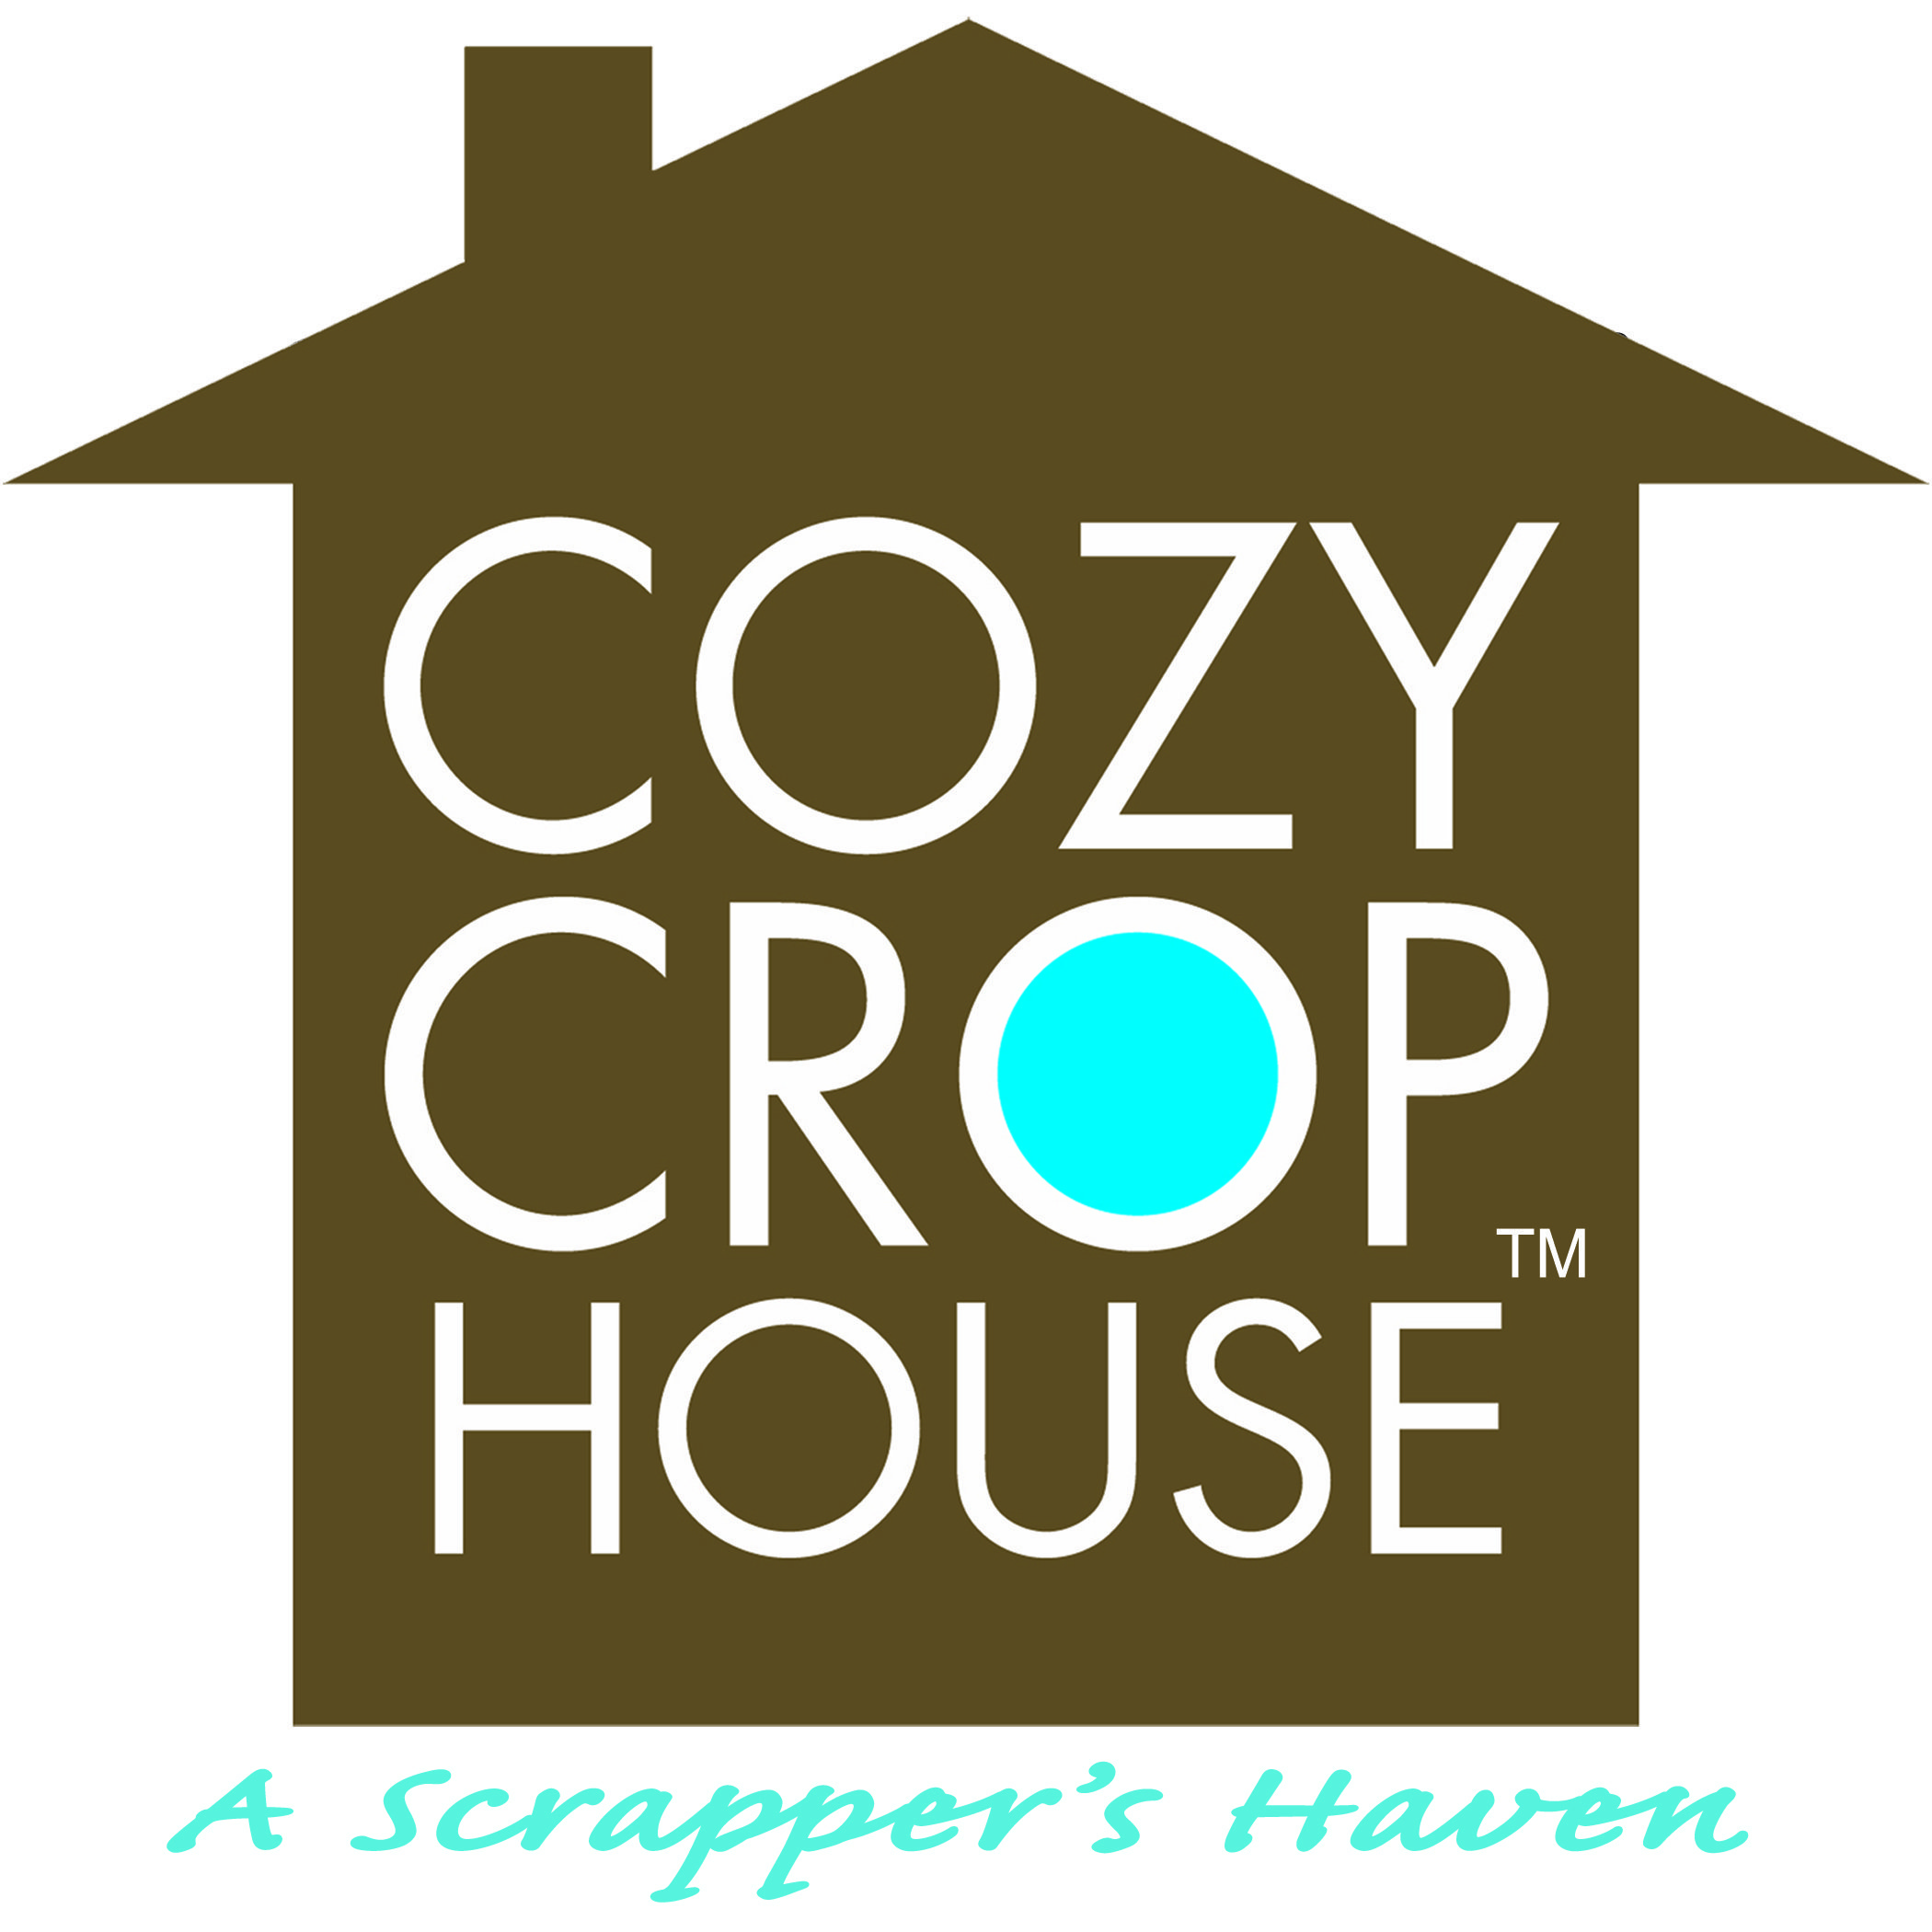 Cozy Crop House